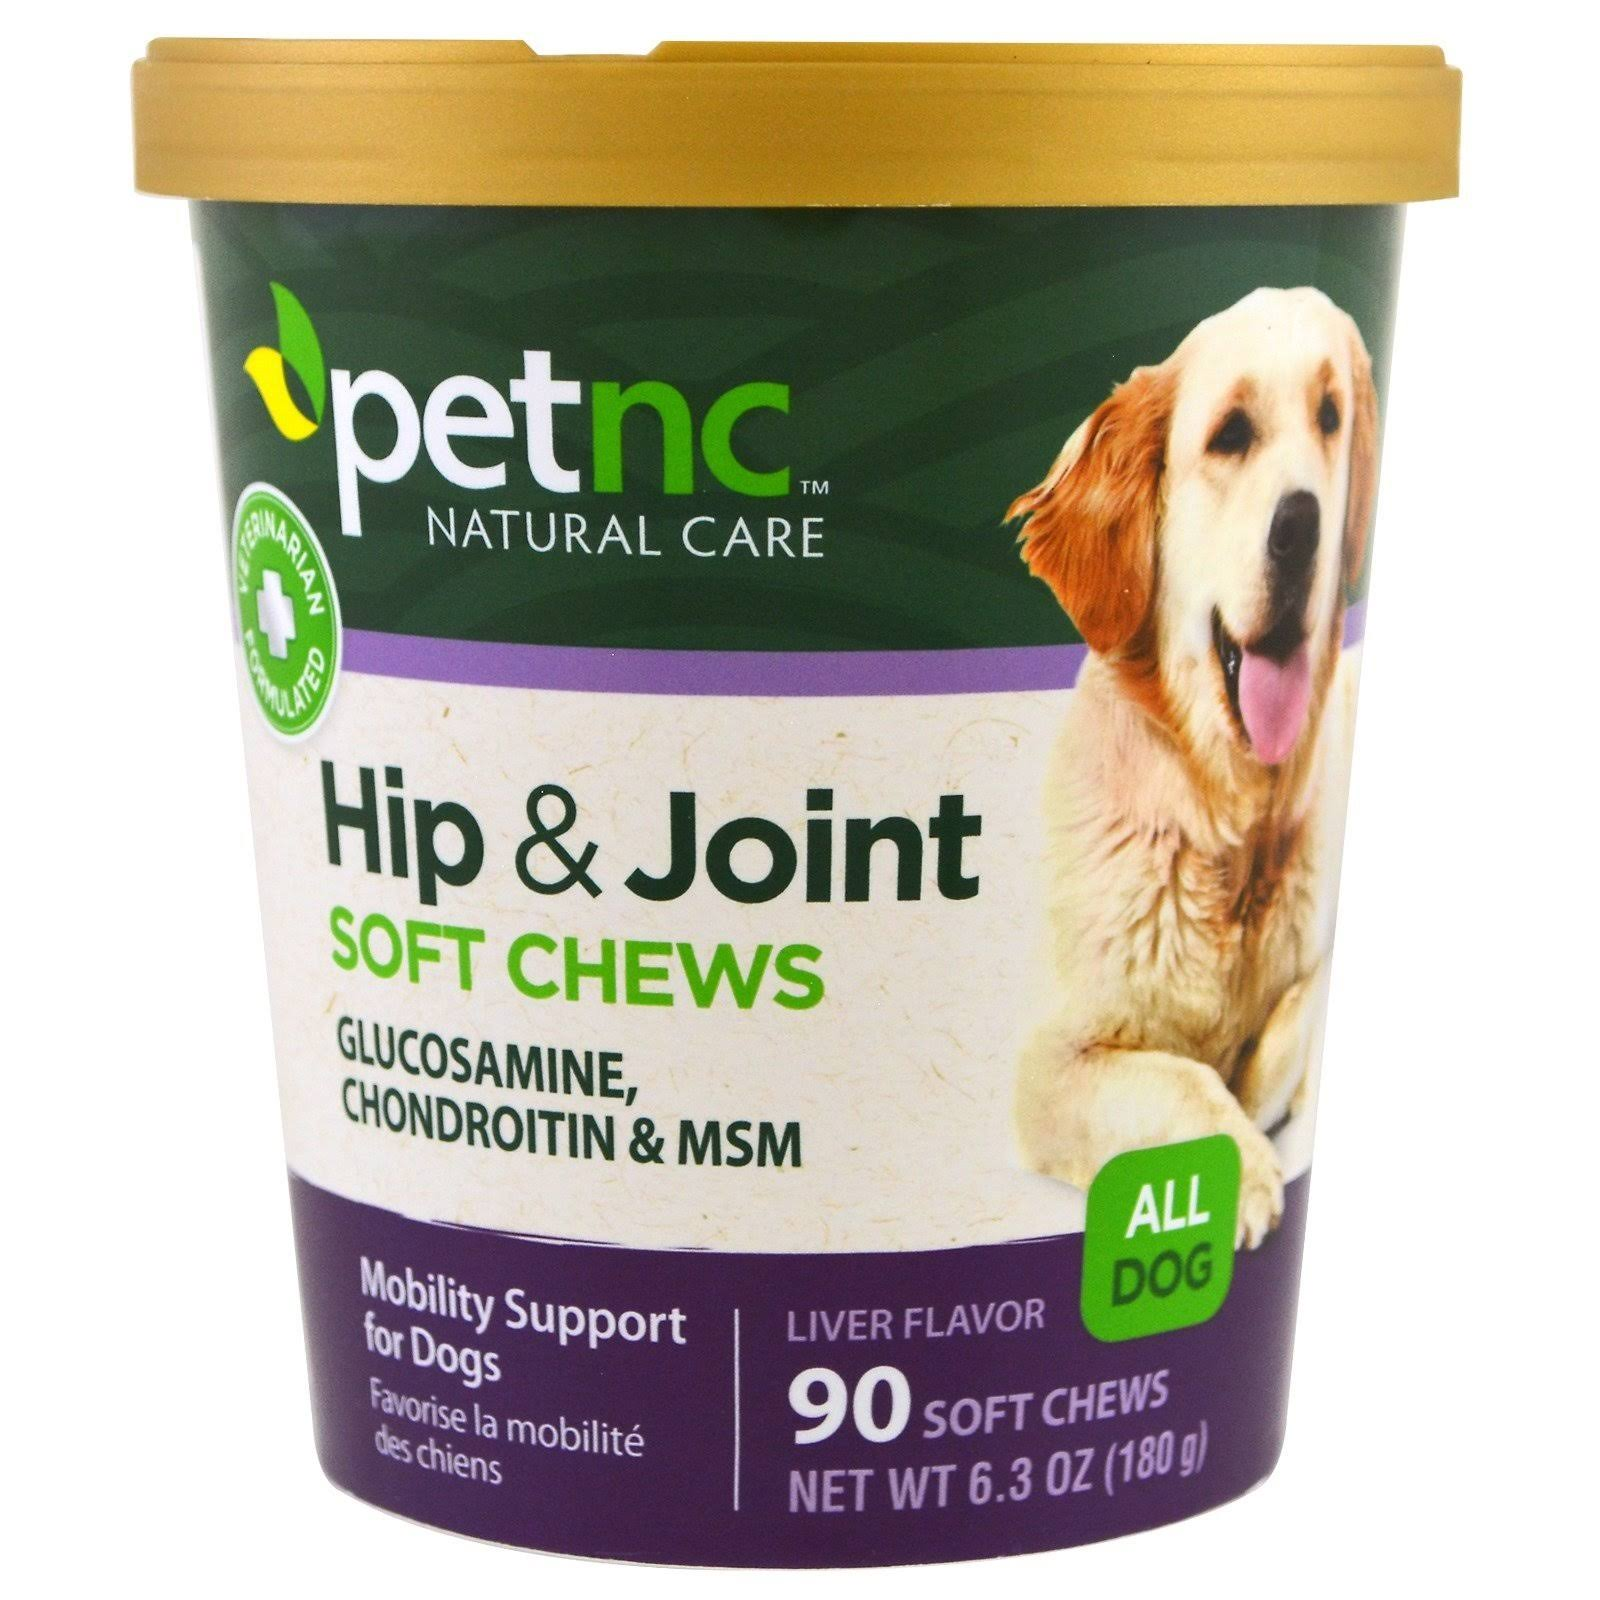 PetNC Natural Care Hip and Joint Dog Chews - 90 Soft Chews